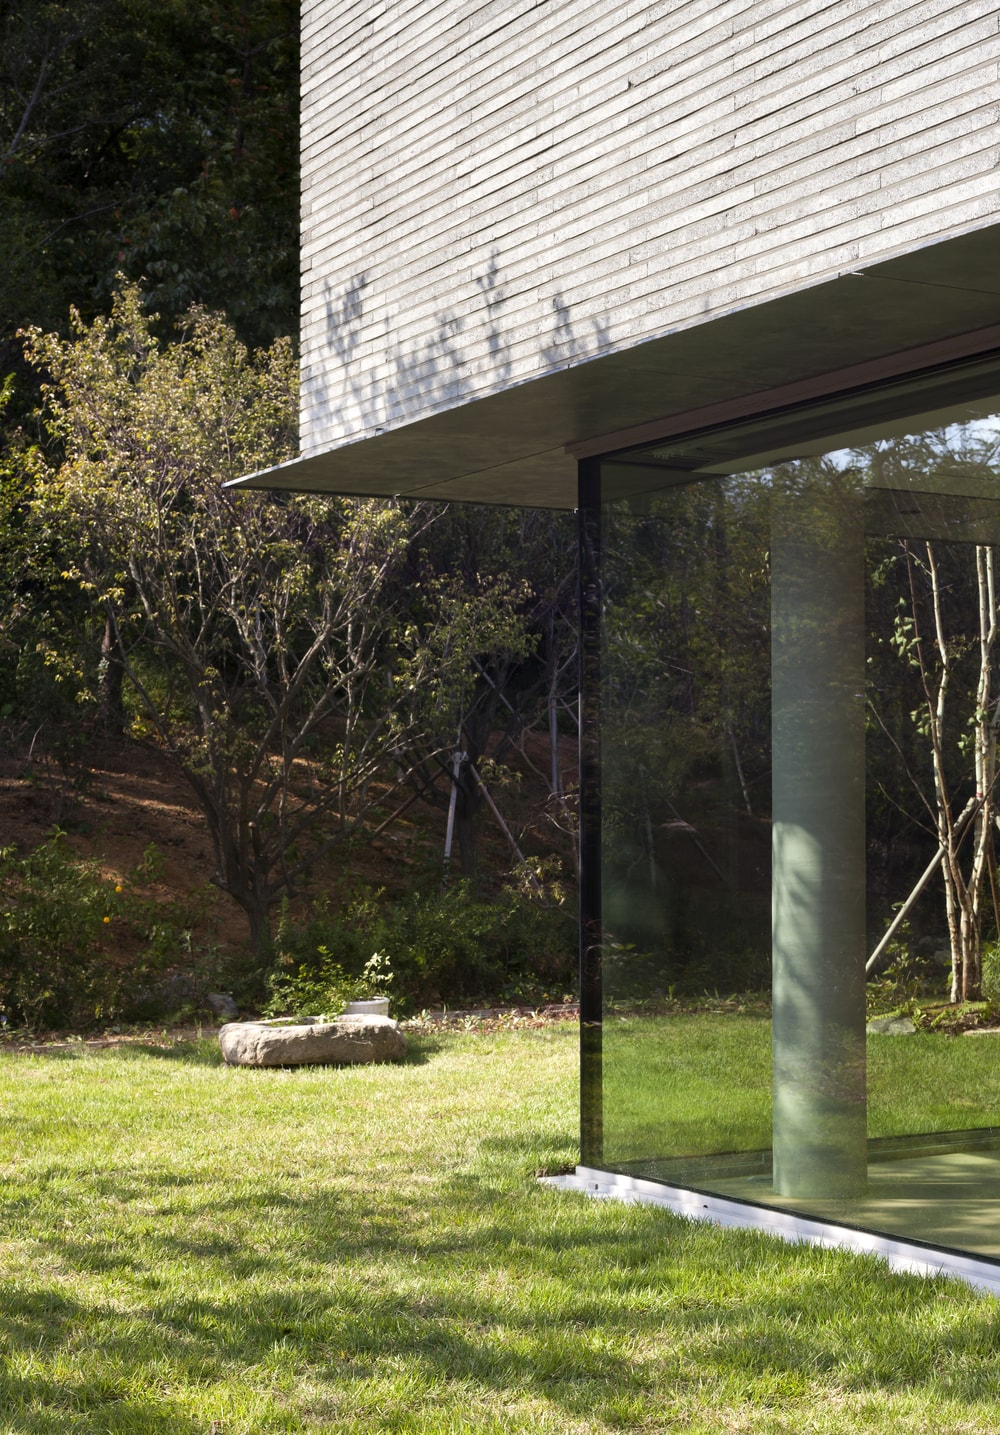 This is a close look at the corner of the glass wall in contrast with the grass lawn just outside.